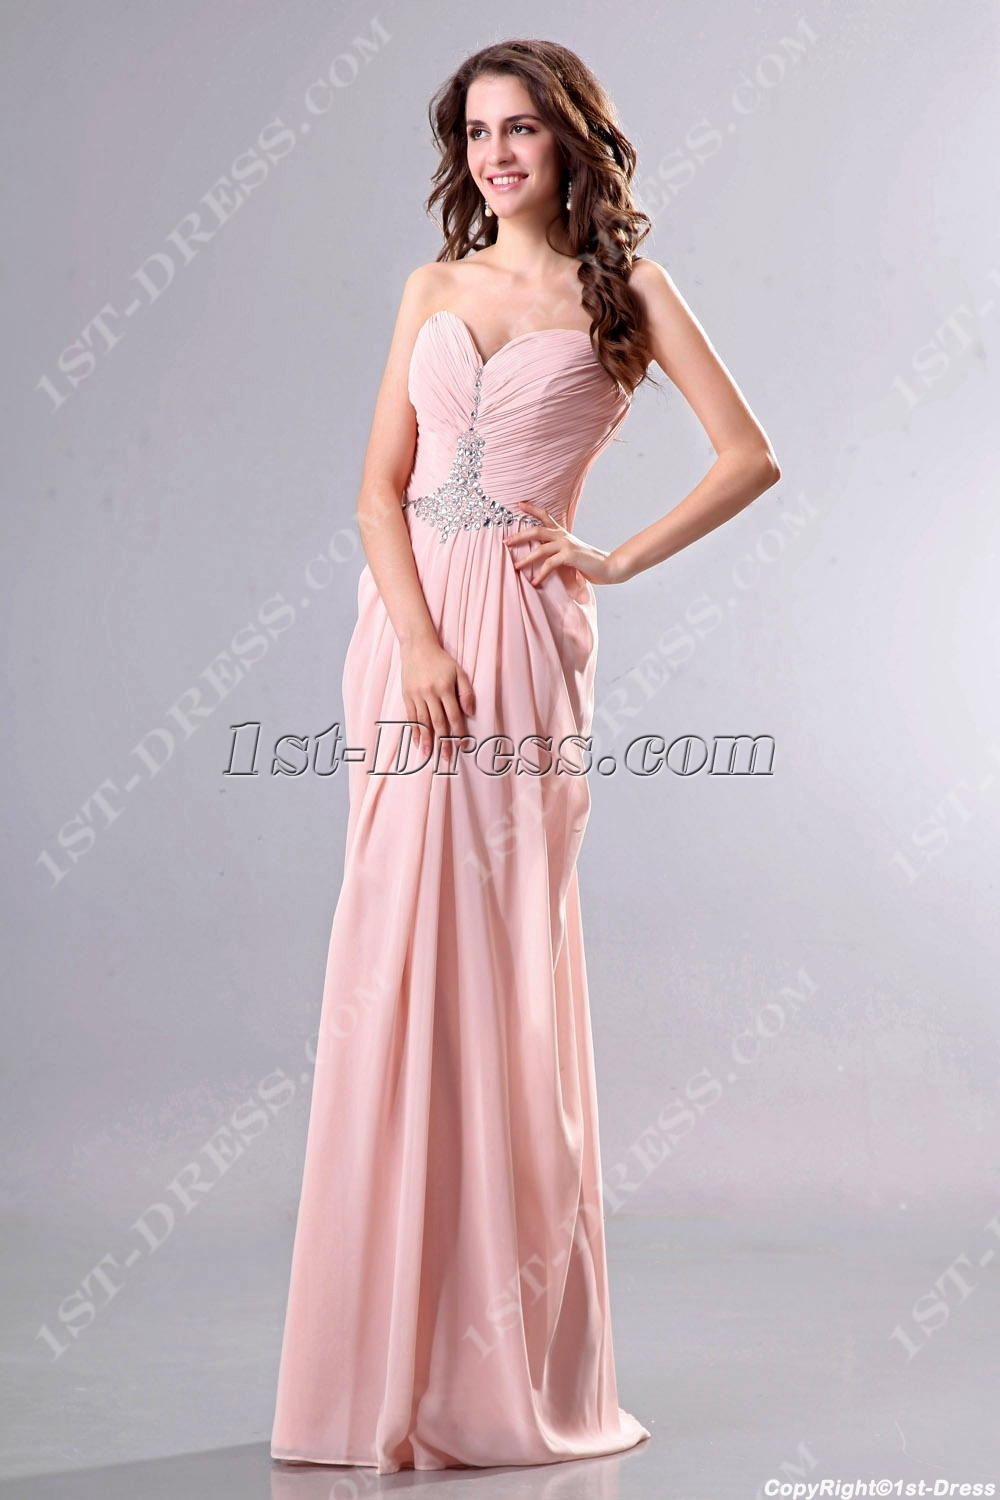 Shop 2012 Evening Dresses and 2012 evening gowns on 1st-dress online ...